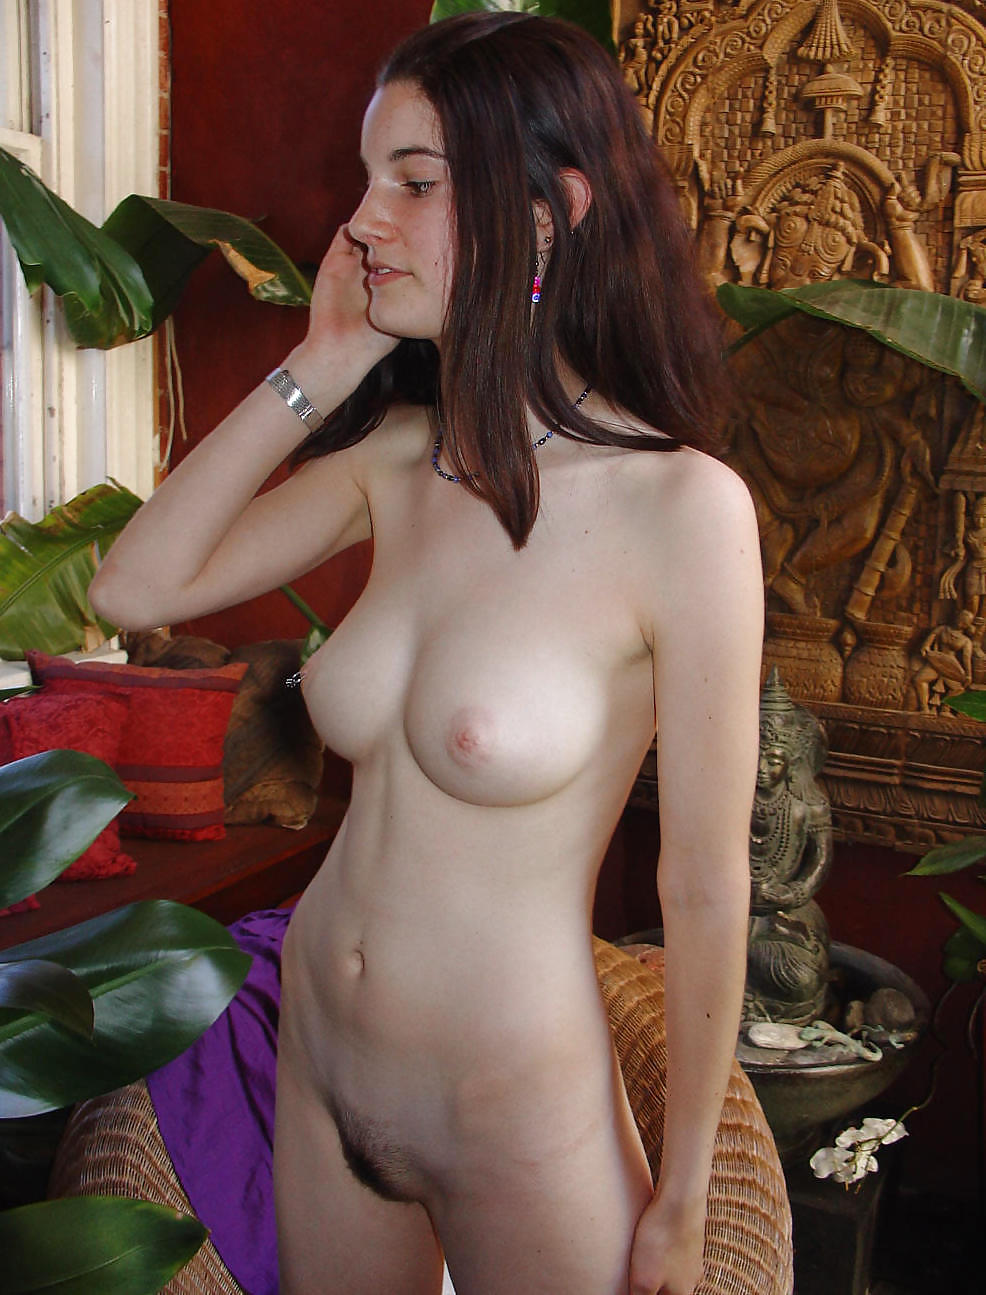 amateur full frontal nude